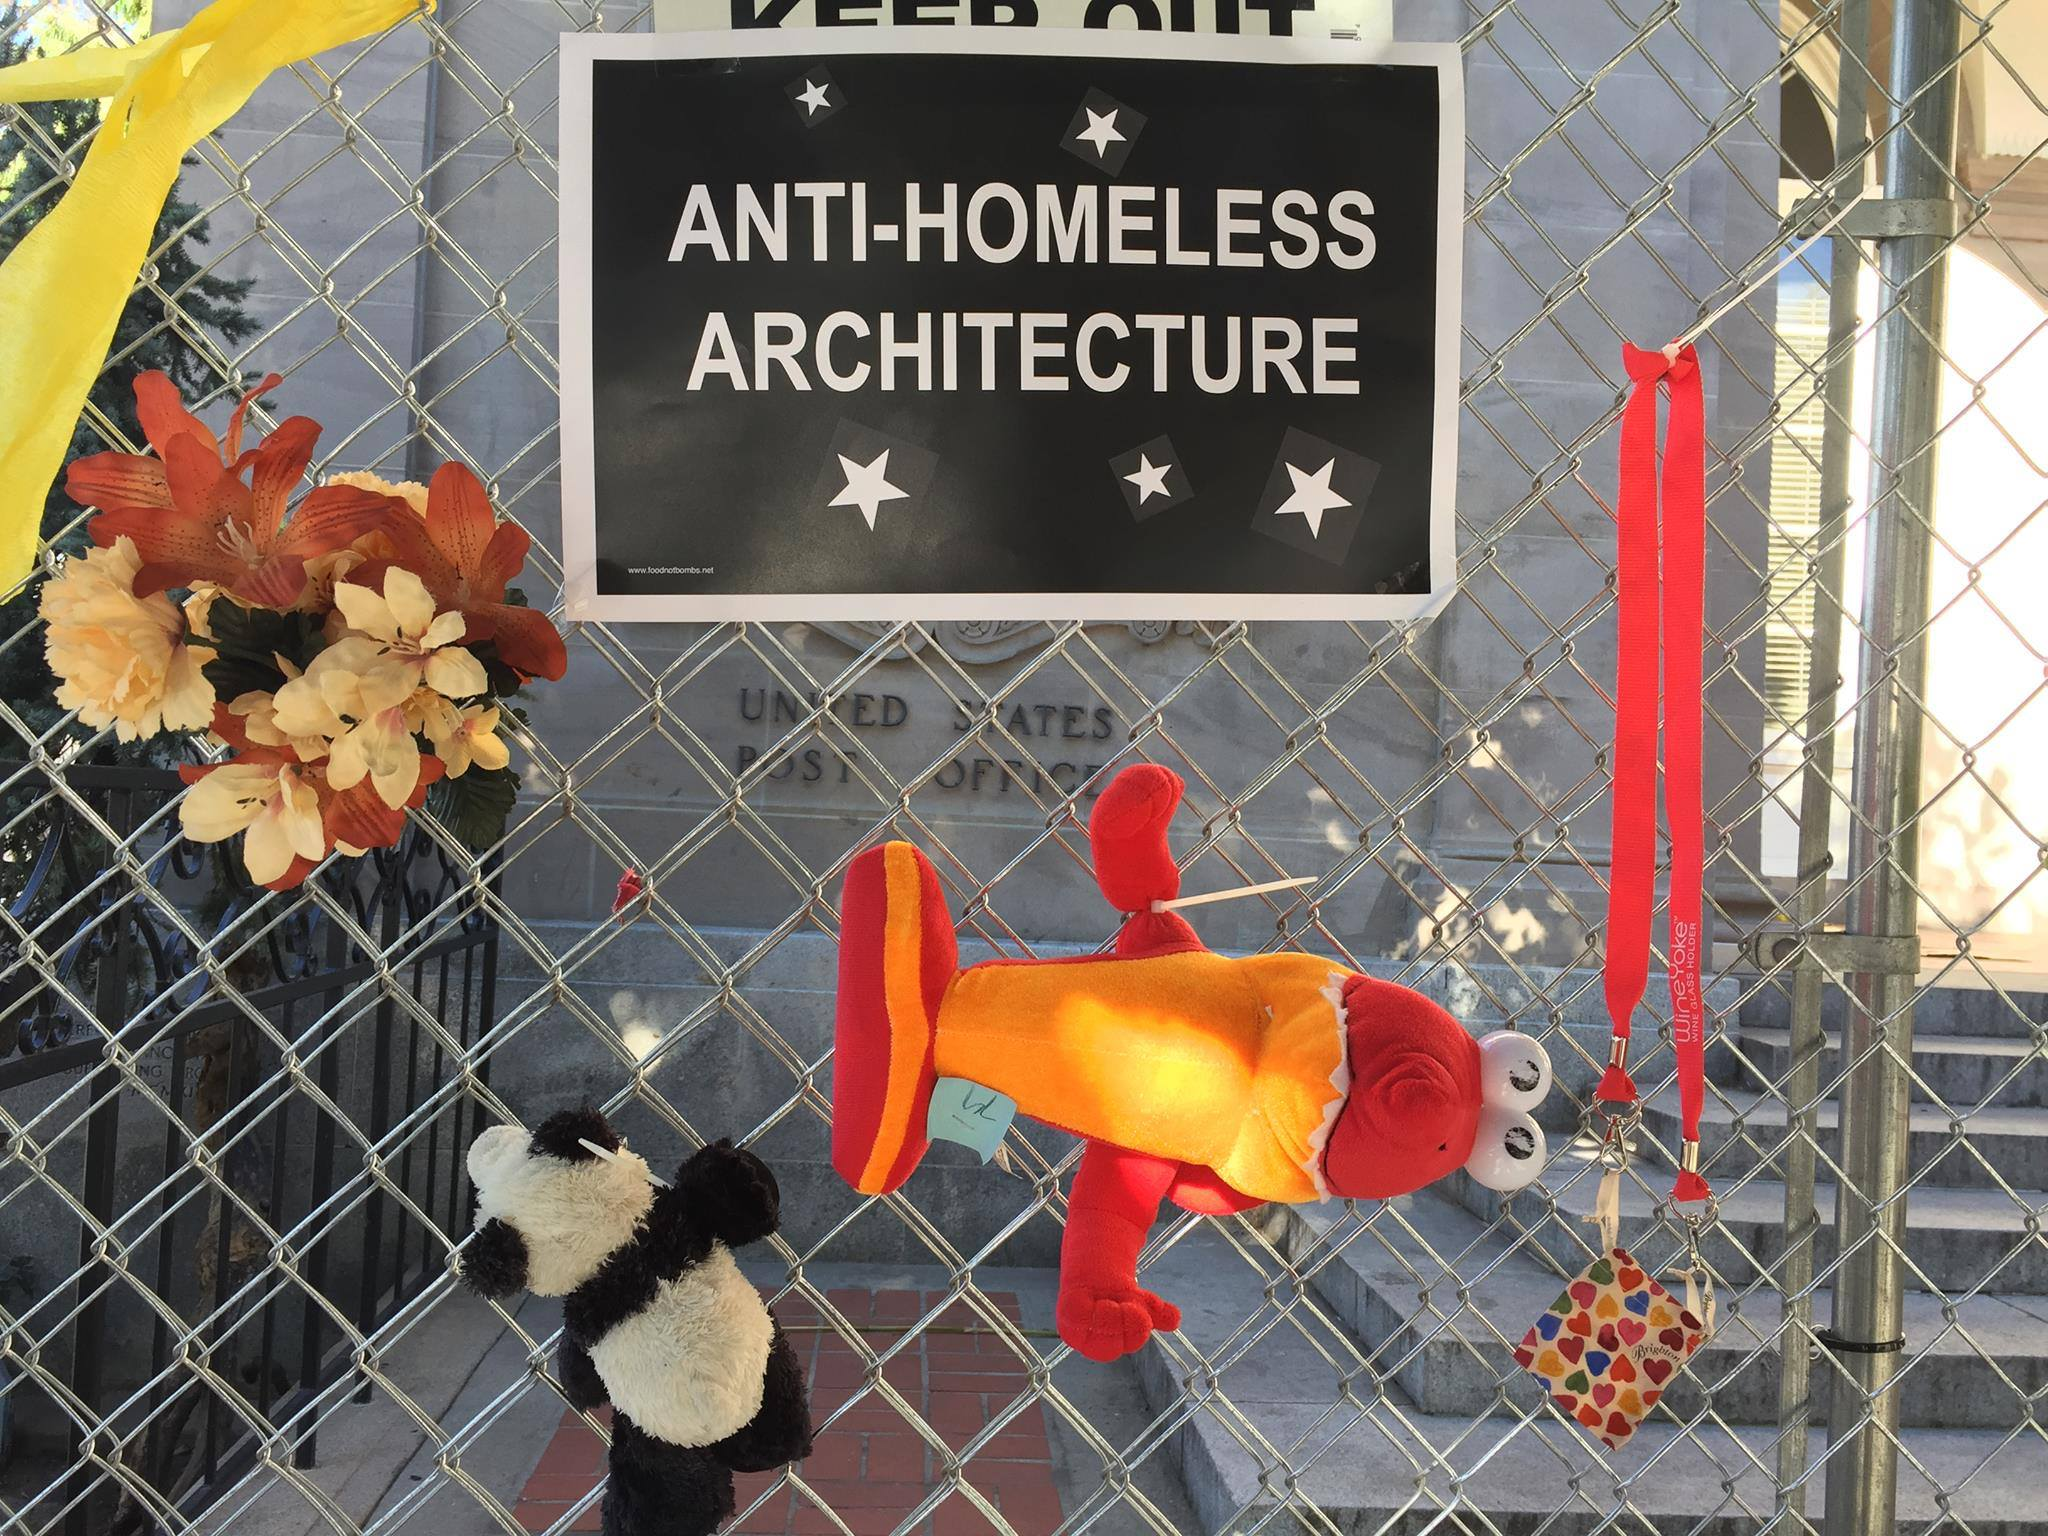 Anniversary Of The Anti Homeless Fence Decorating Party